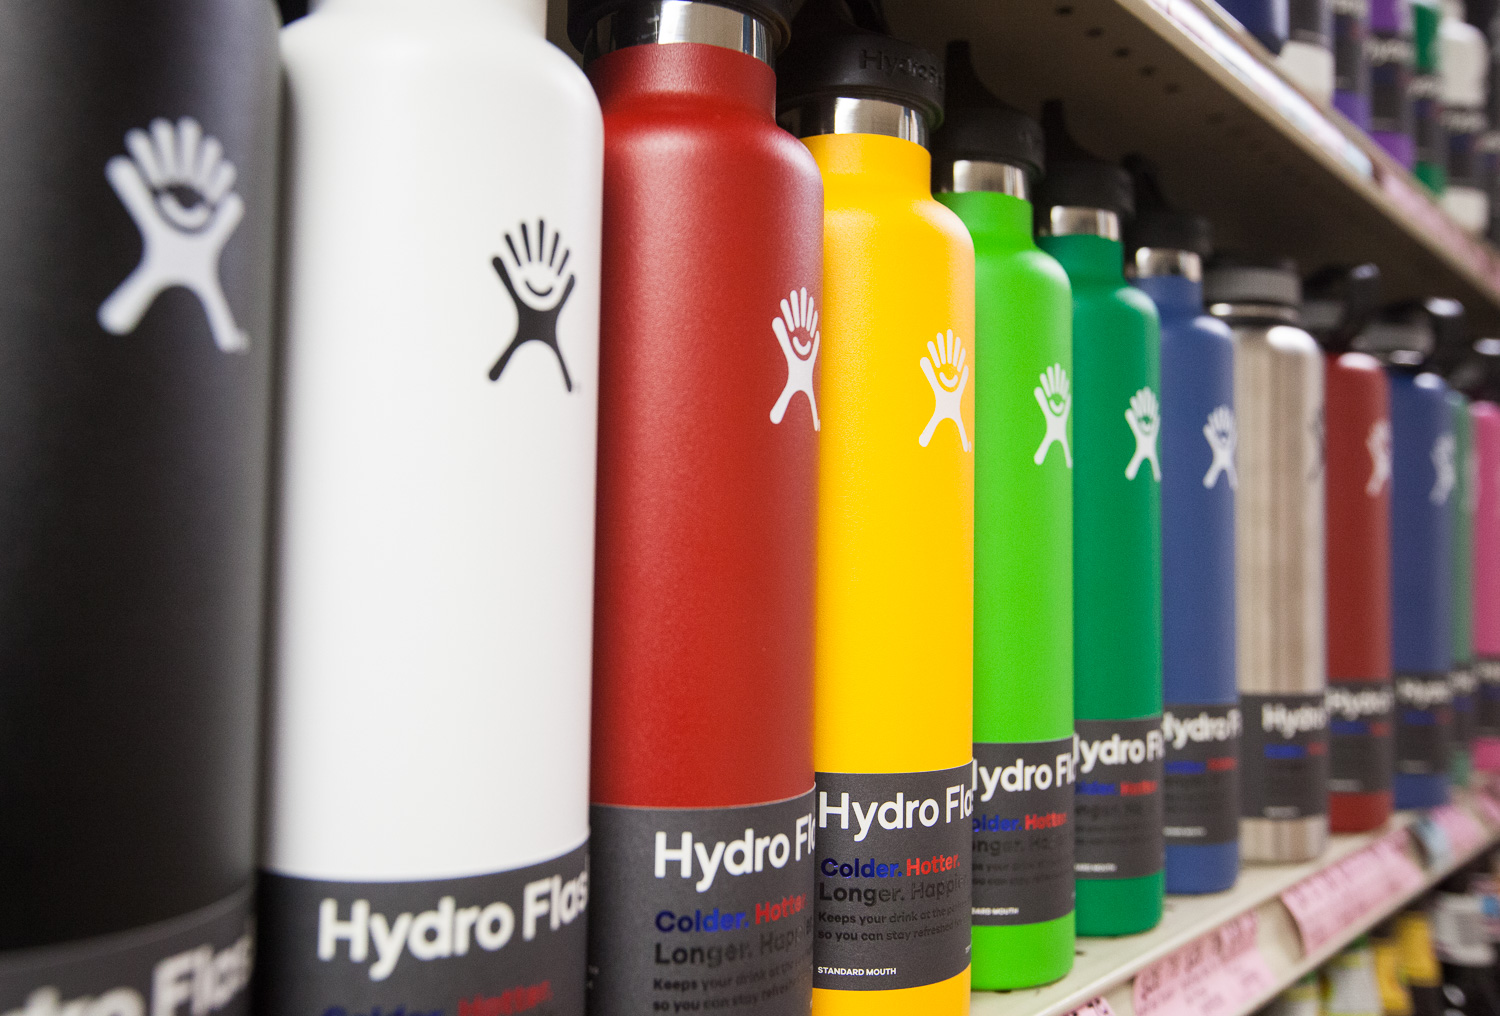 hydro-flask-shelf-mana-foods-gifts-household-department.jpg